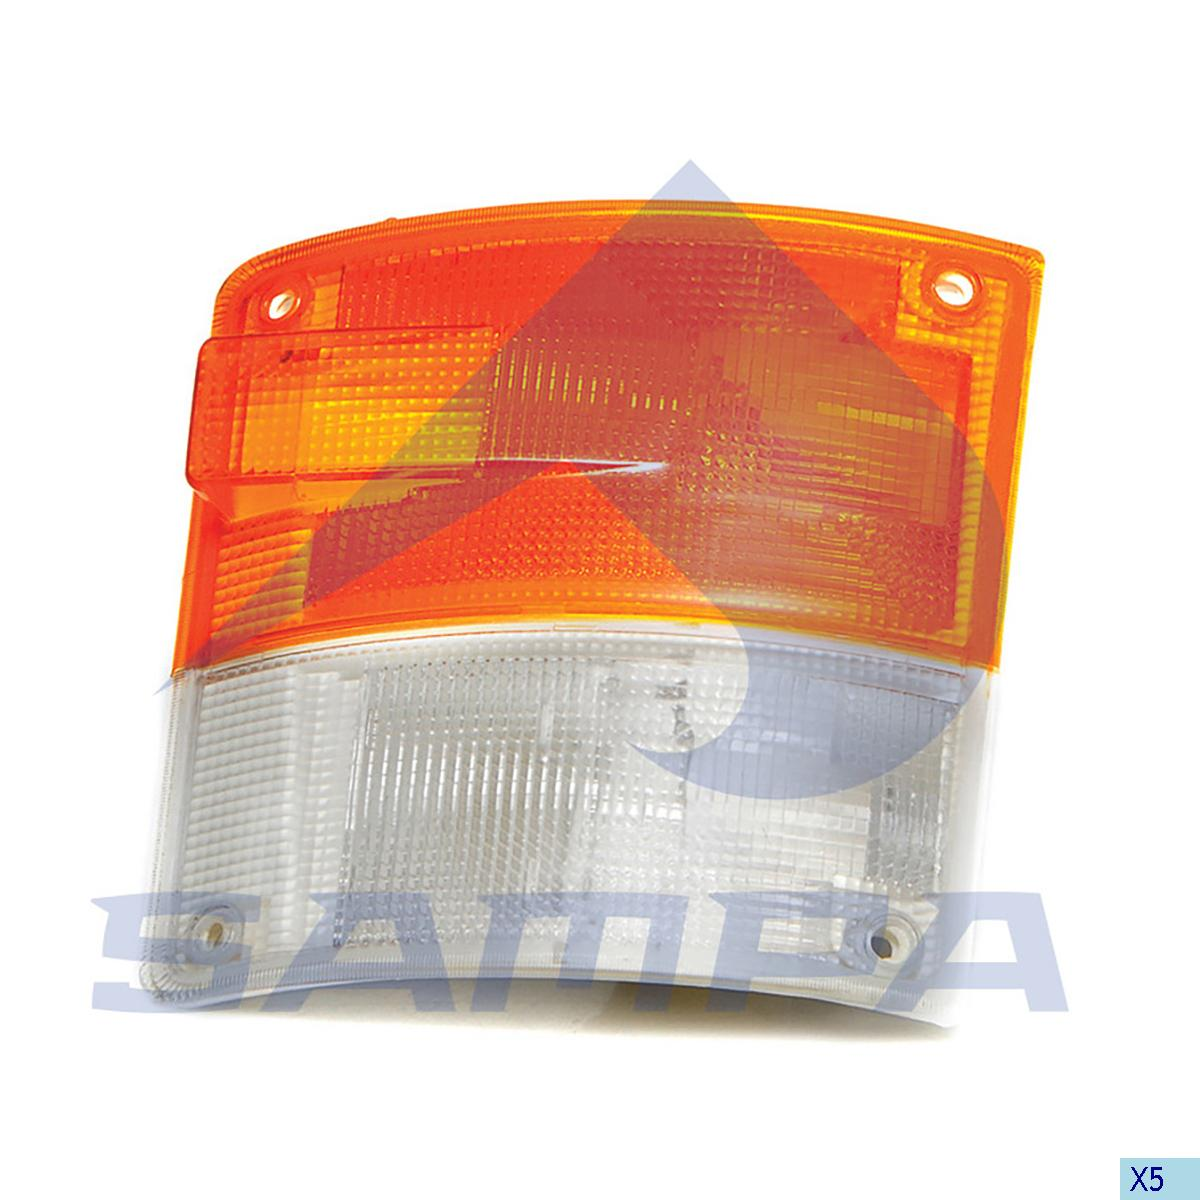 Signal Lamp, Volvo, Electric System